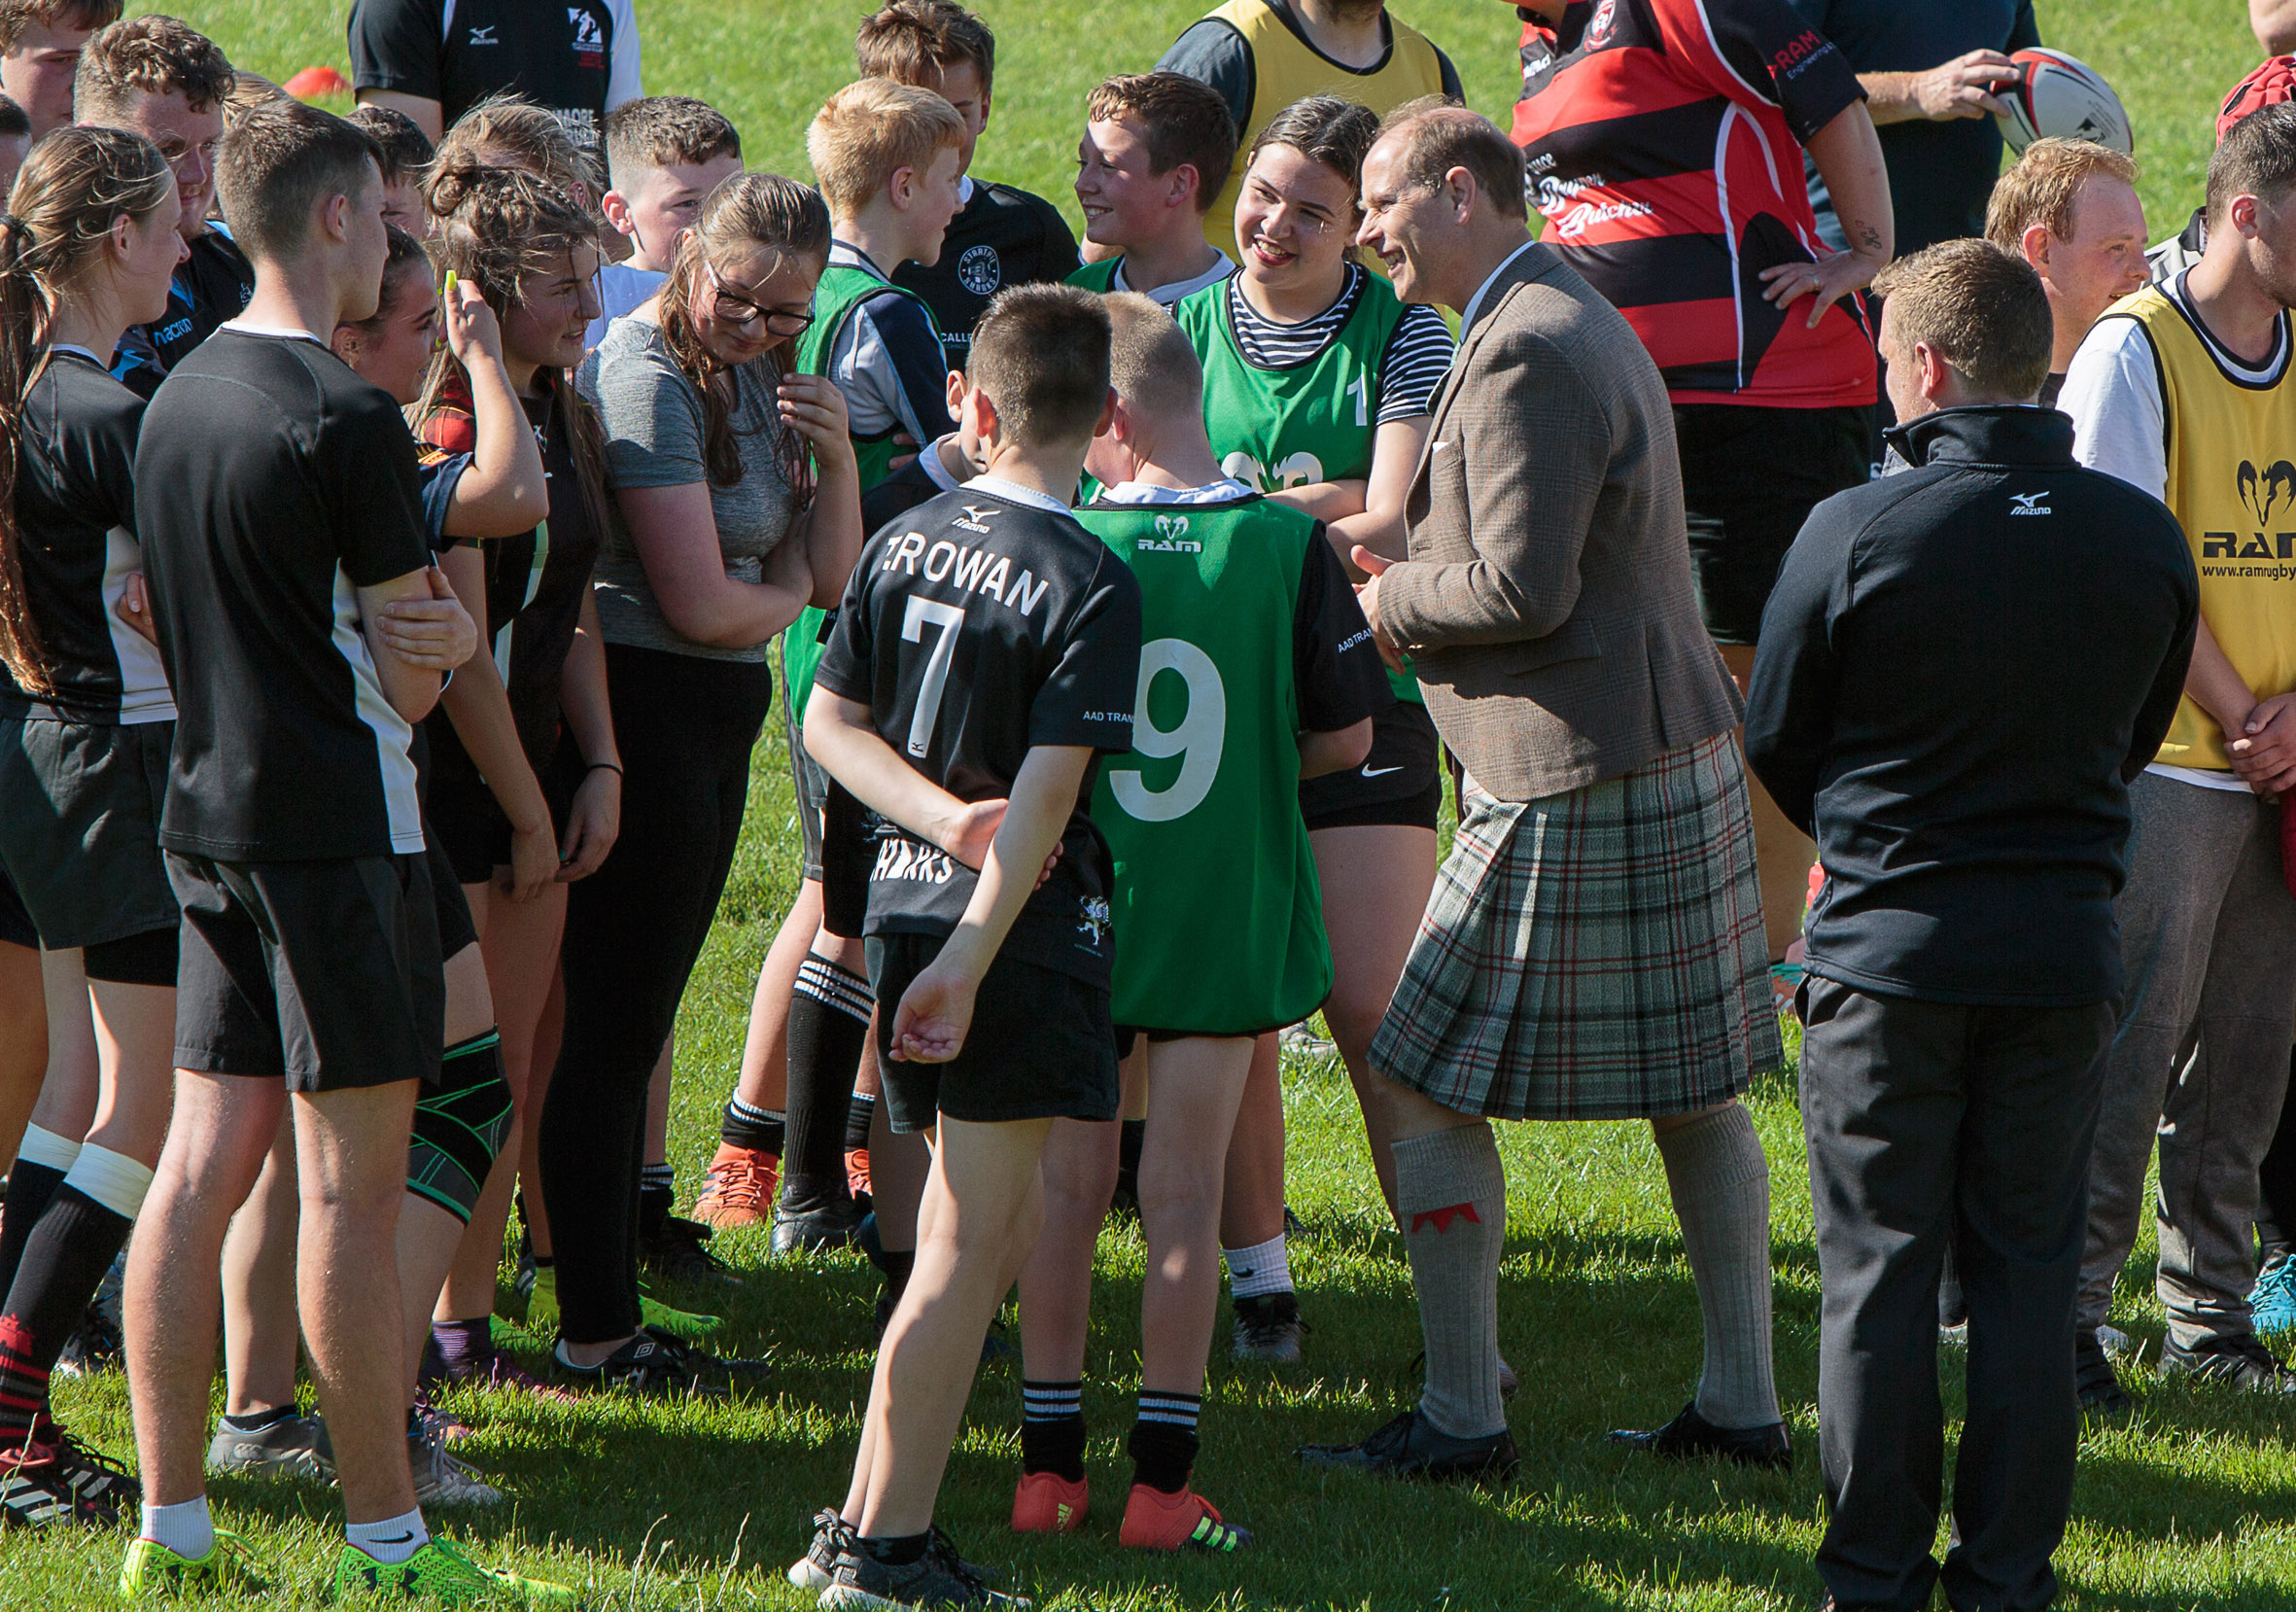 HRH The Earl of Forfar meets members of Strathmore Community Rugby Trust's Rugby Academy on his first visit to Forfar as earl in July 2019.